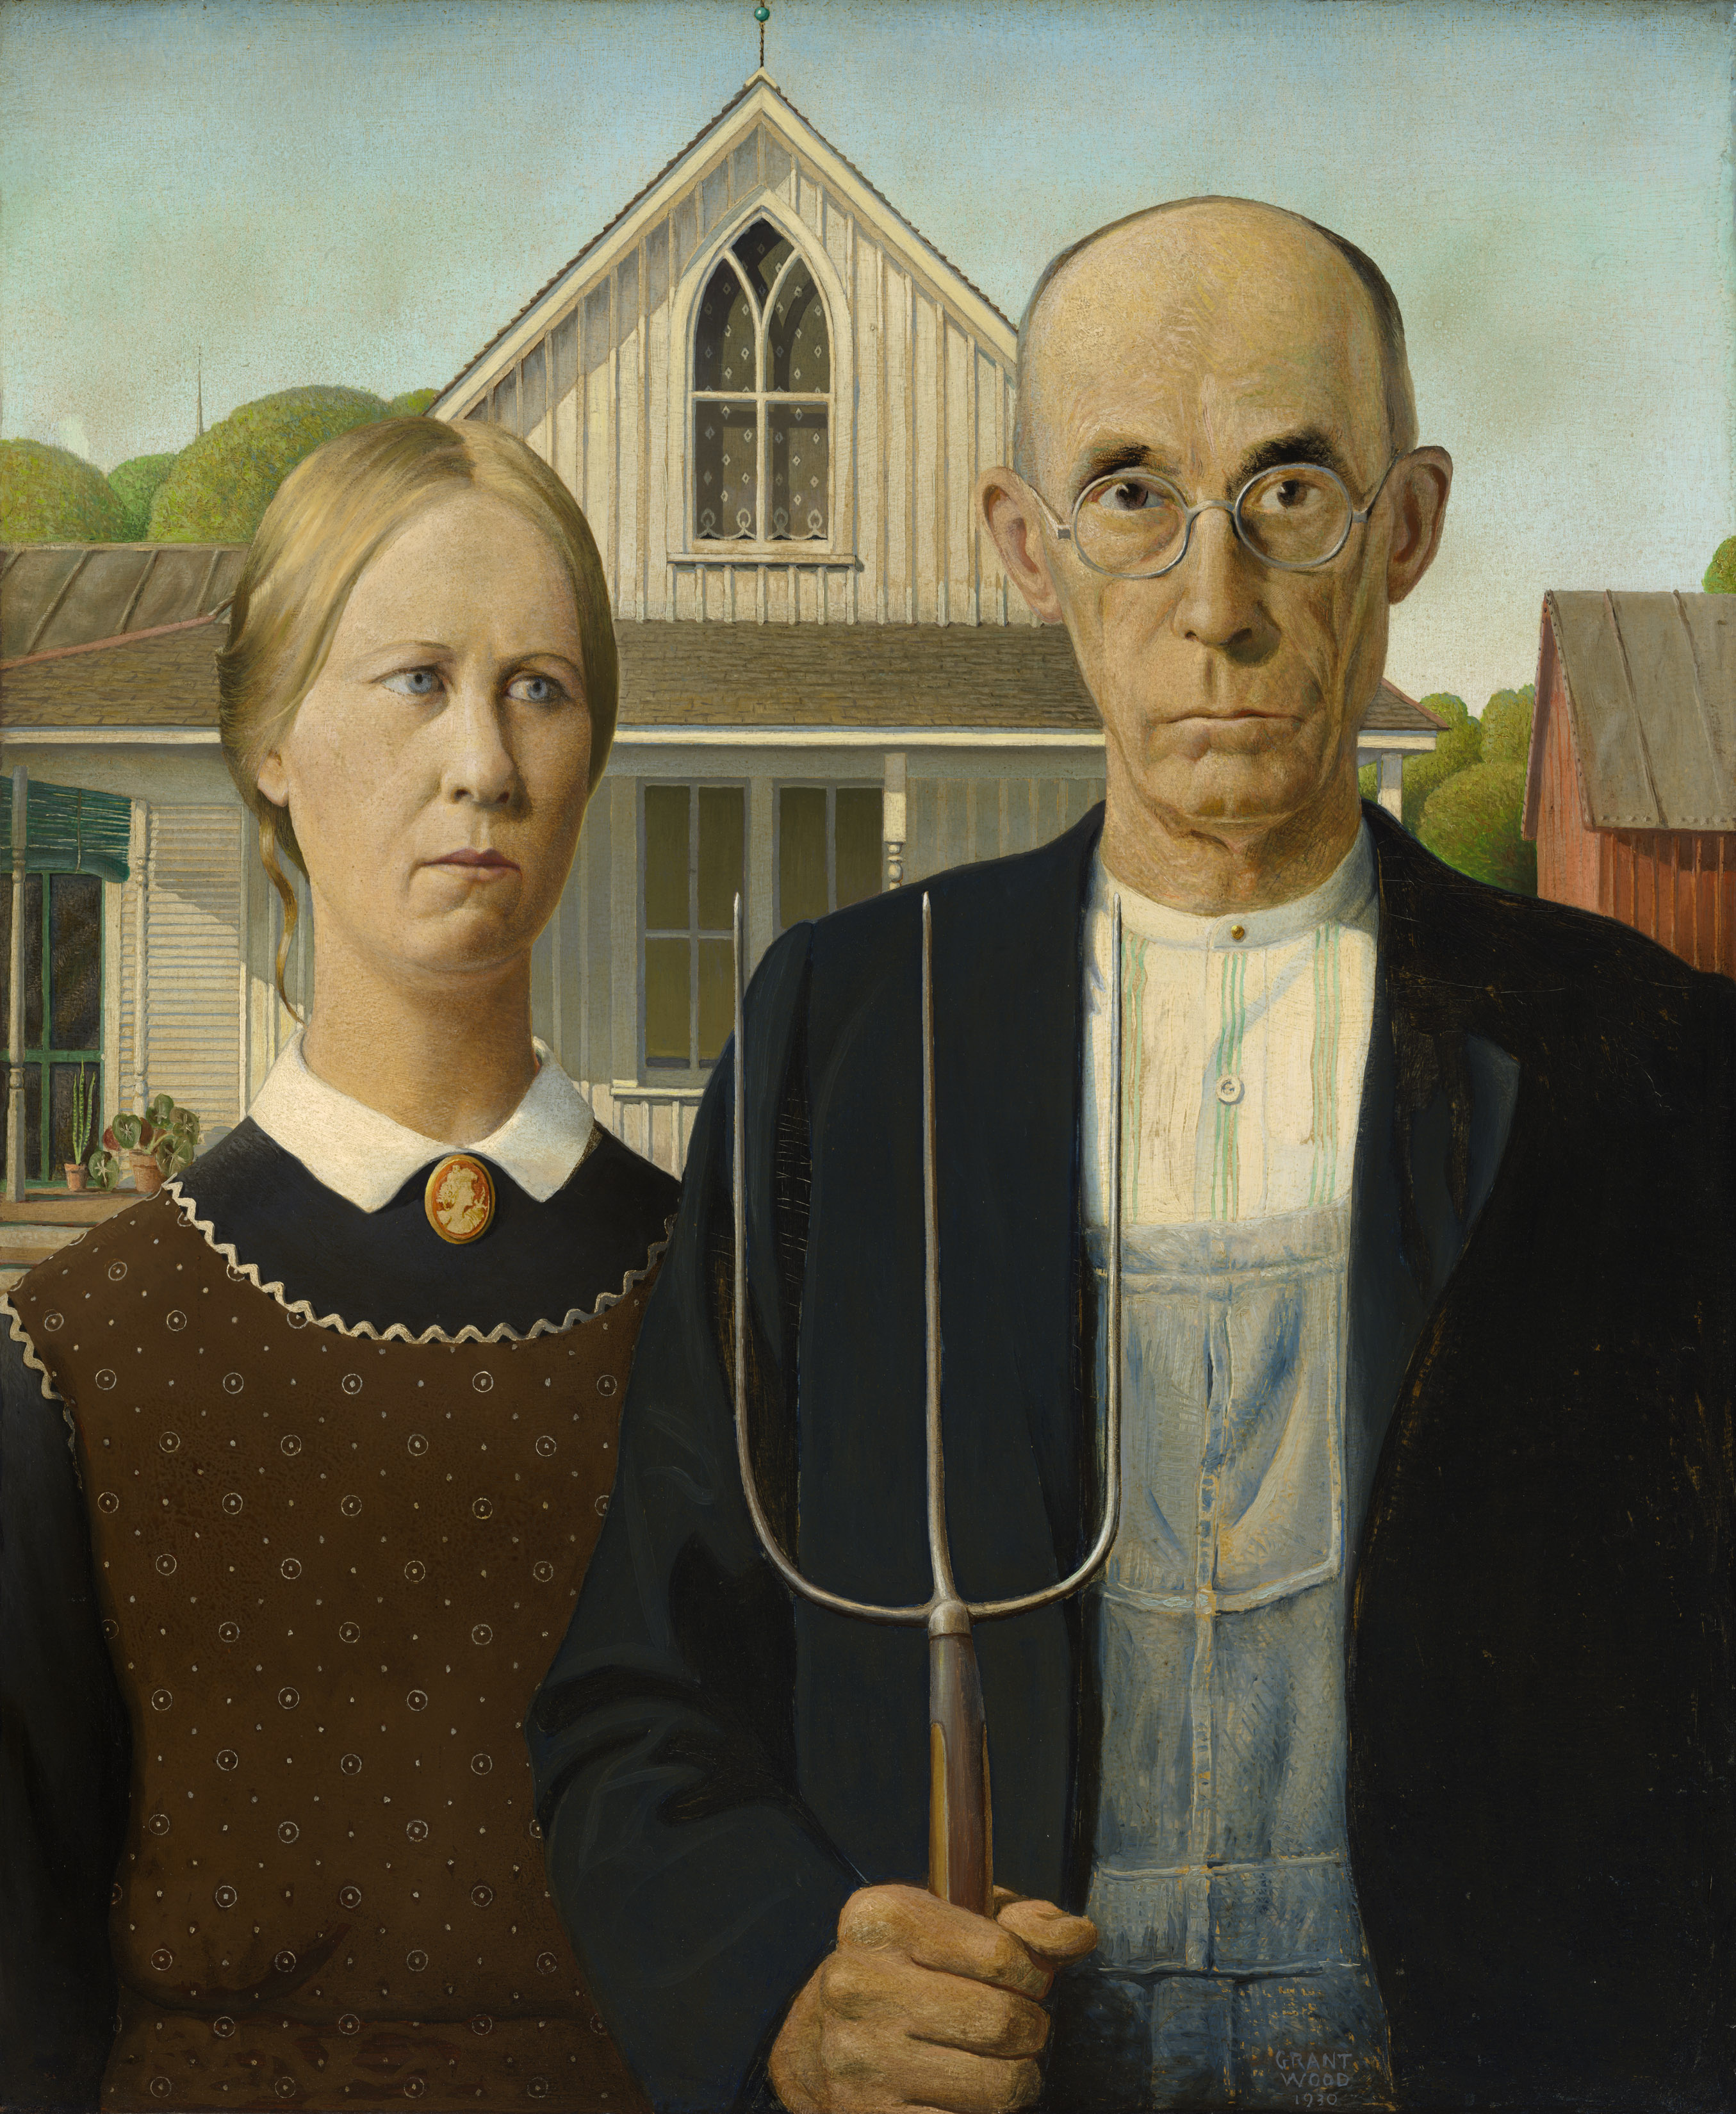 Grant Wood, American Gothic, 1930 at Royal Academy's America after the Fall - The Art Institute of Chicago